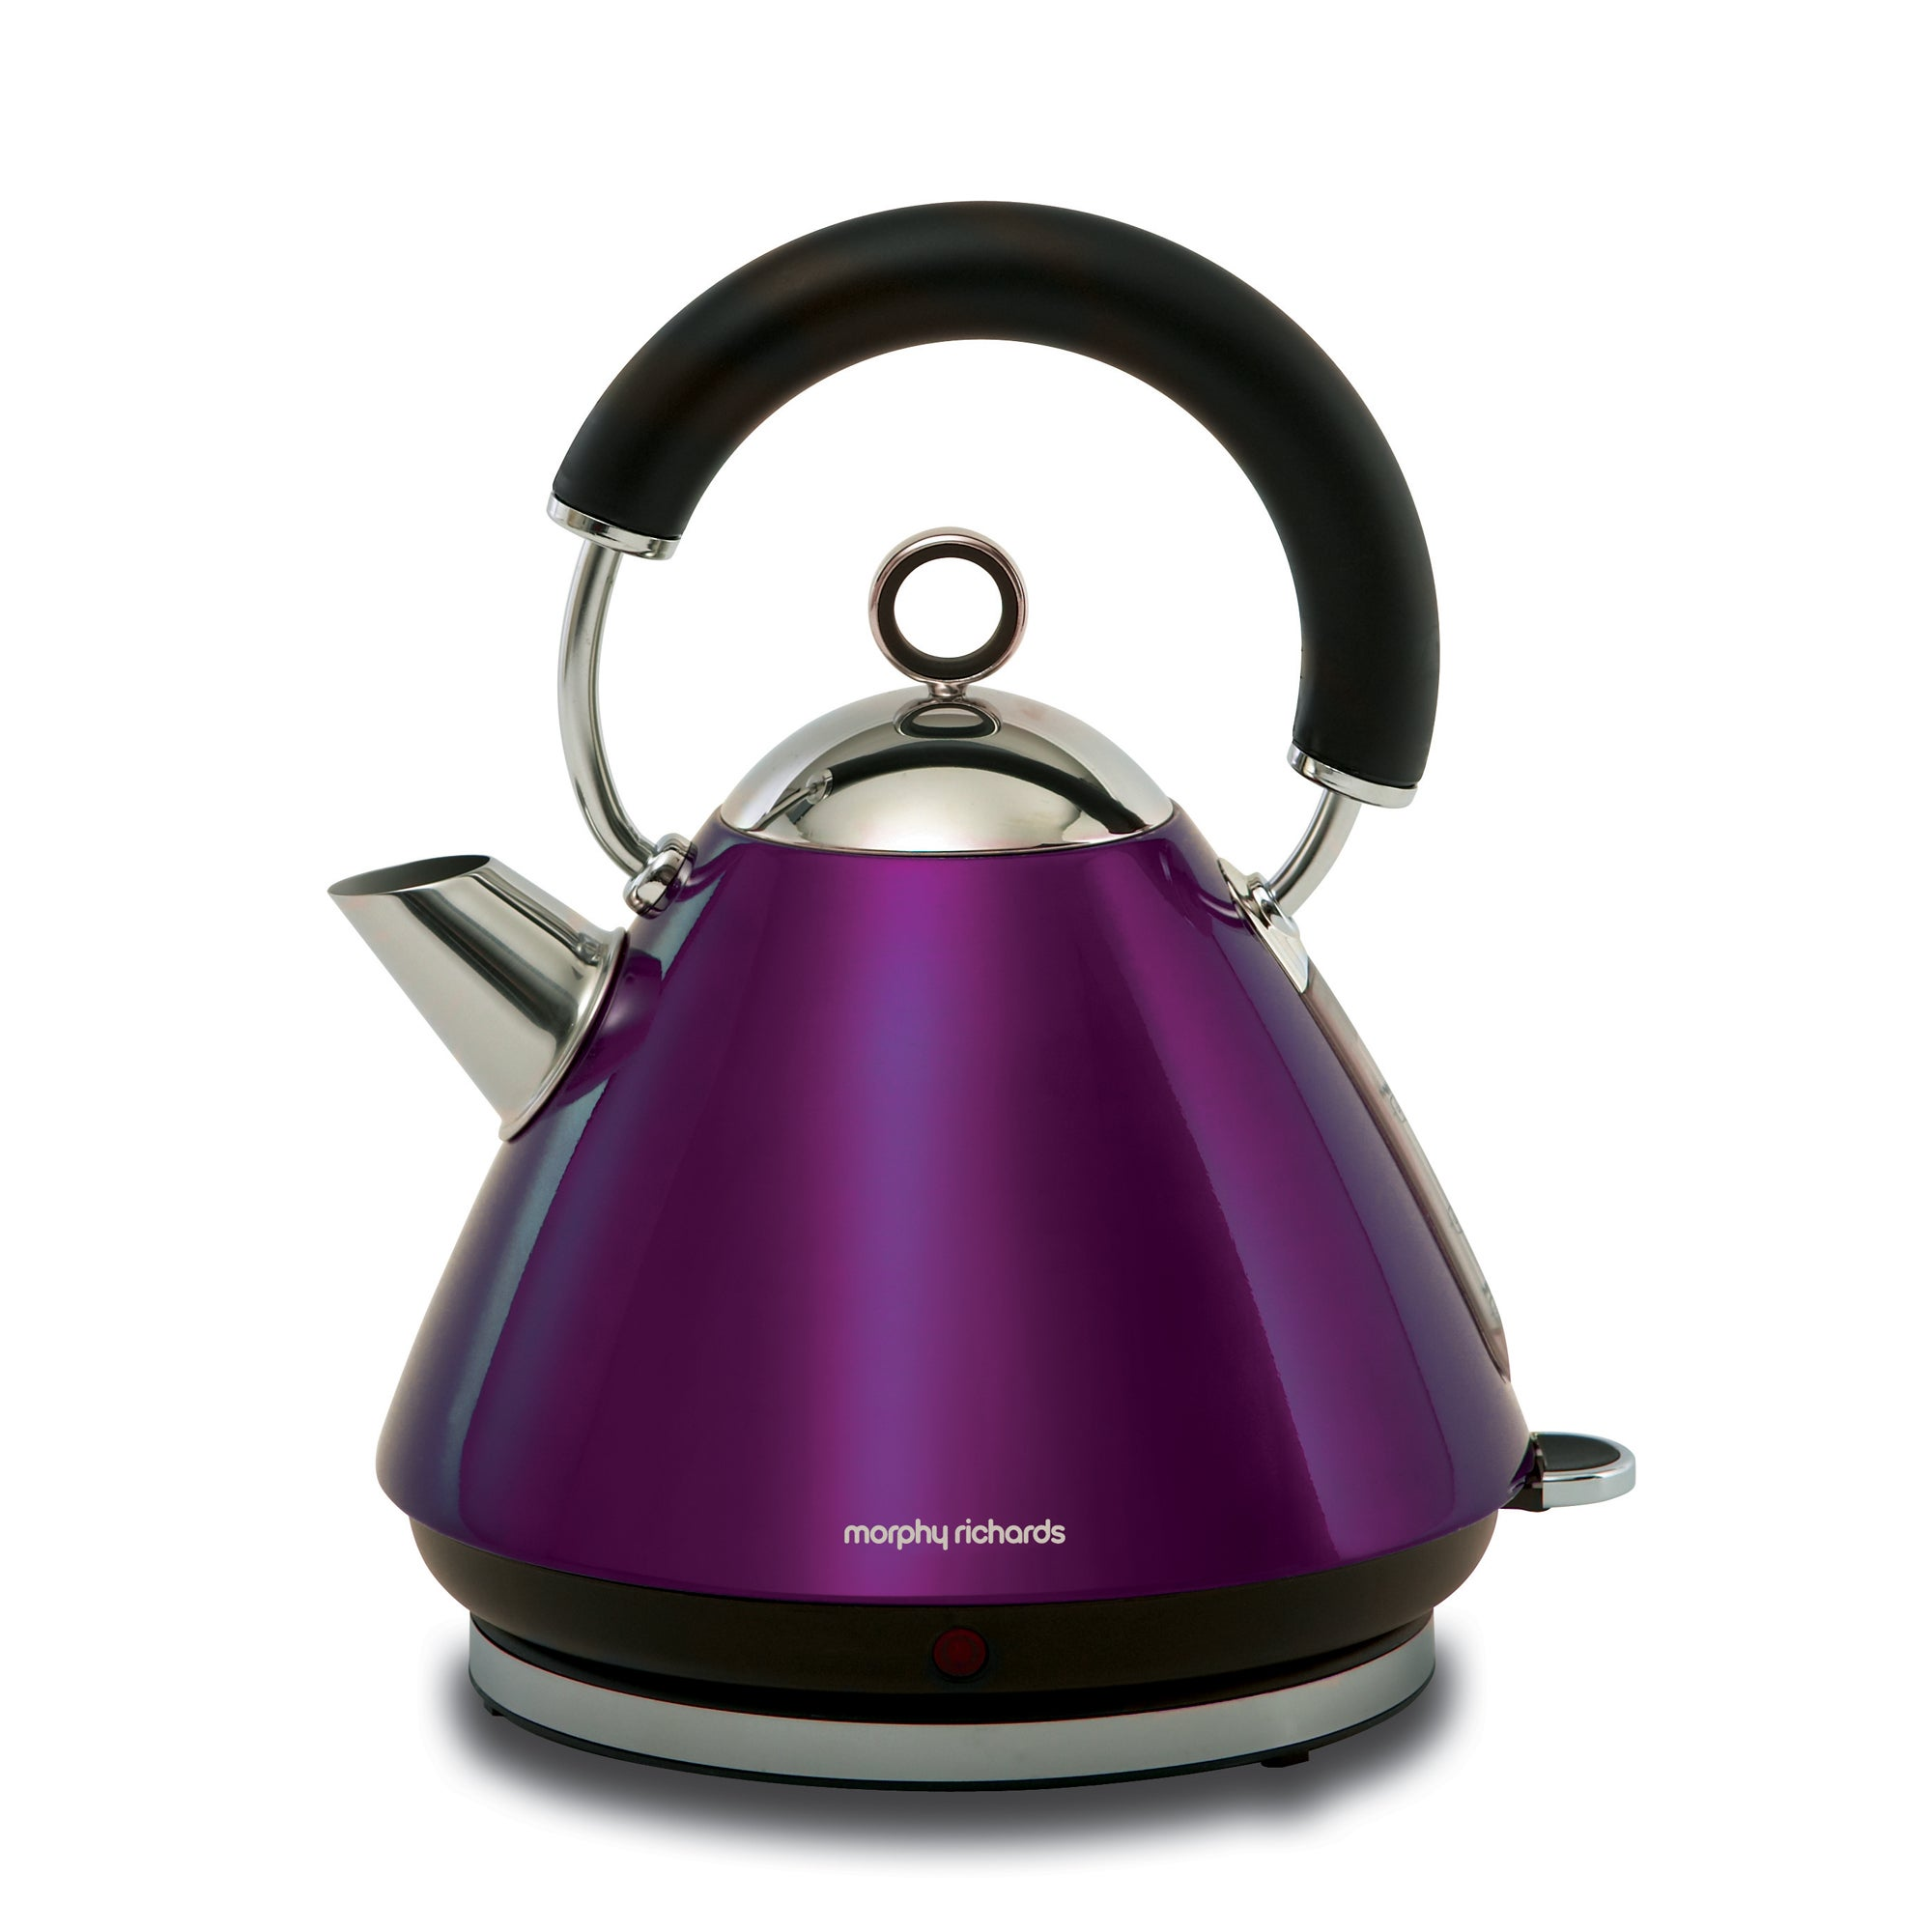 Morphy Richards Accents Purple Pyramid Kettle